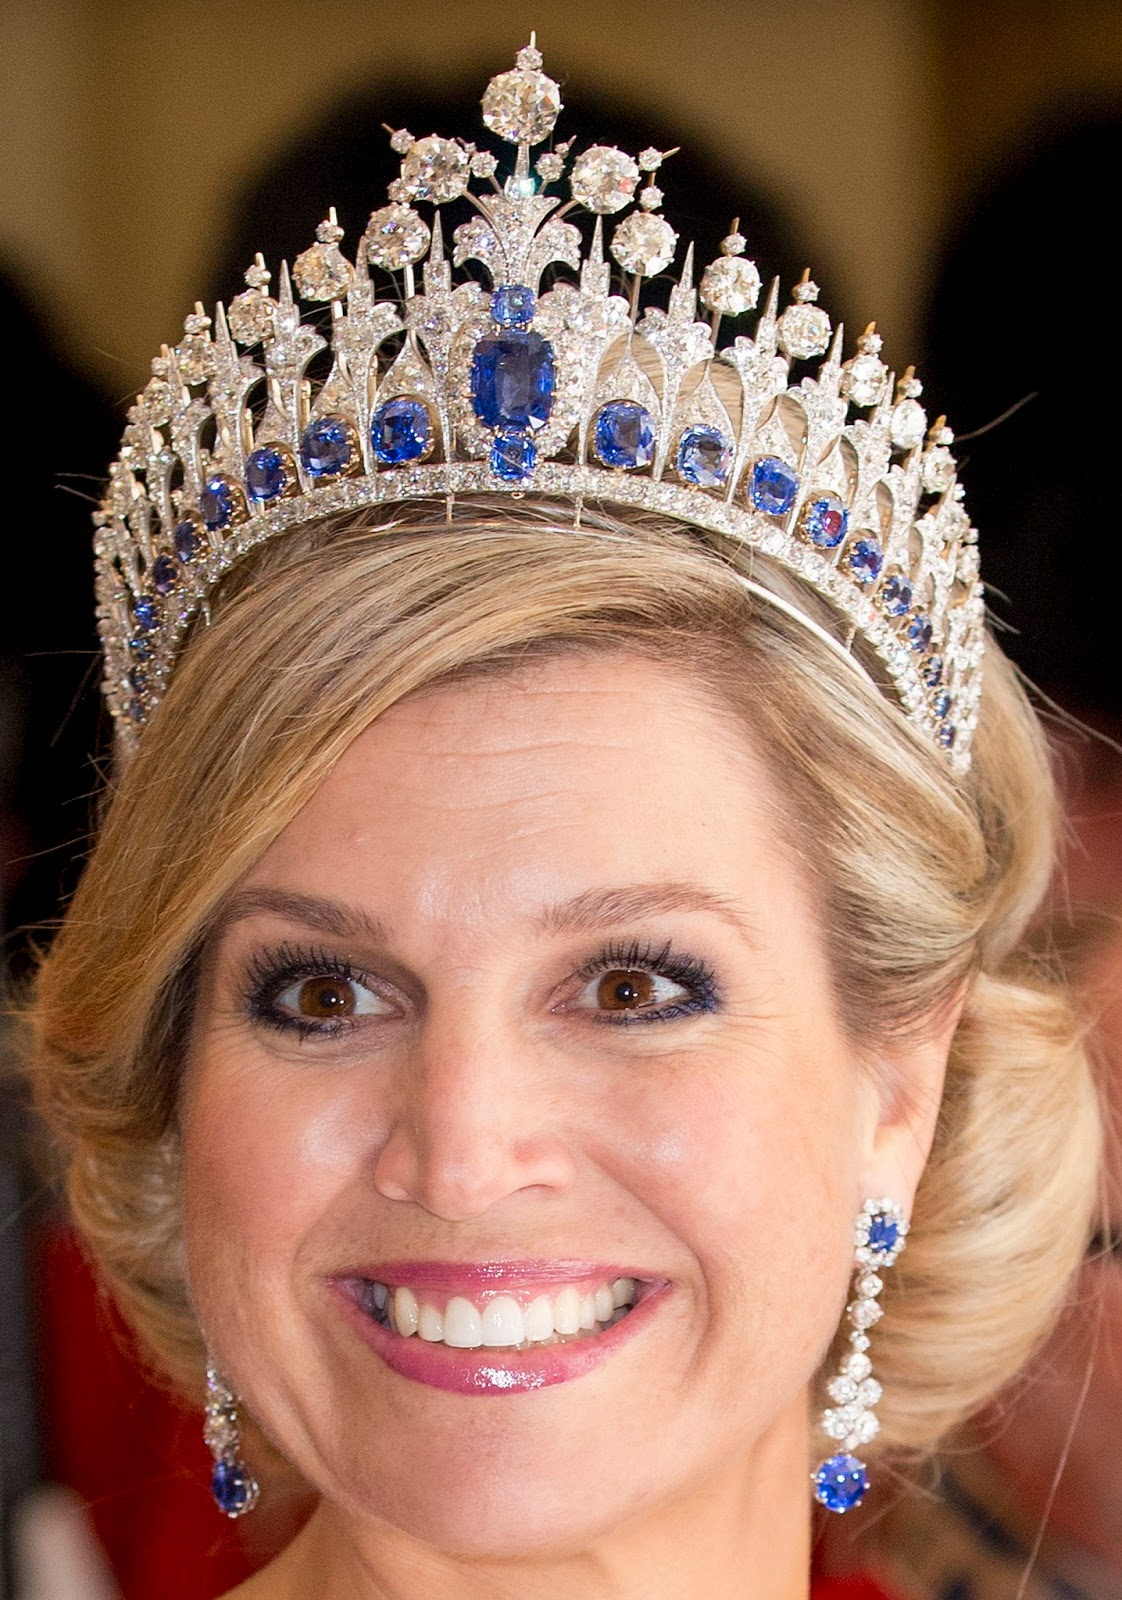 Royal bling Queen Maxima of The Netherlands Wearing Her Sapphire Parure Tiara with Matching Earrings